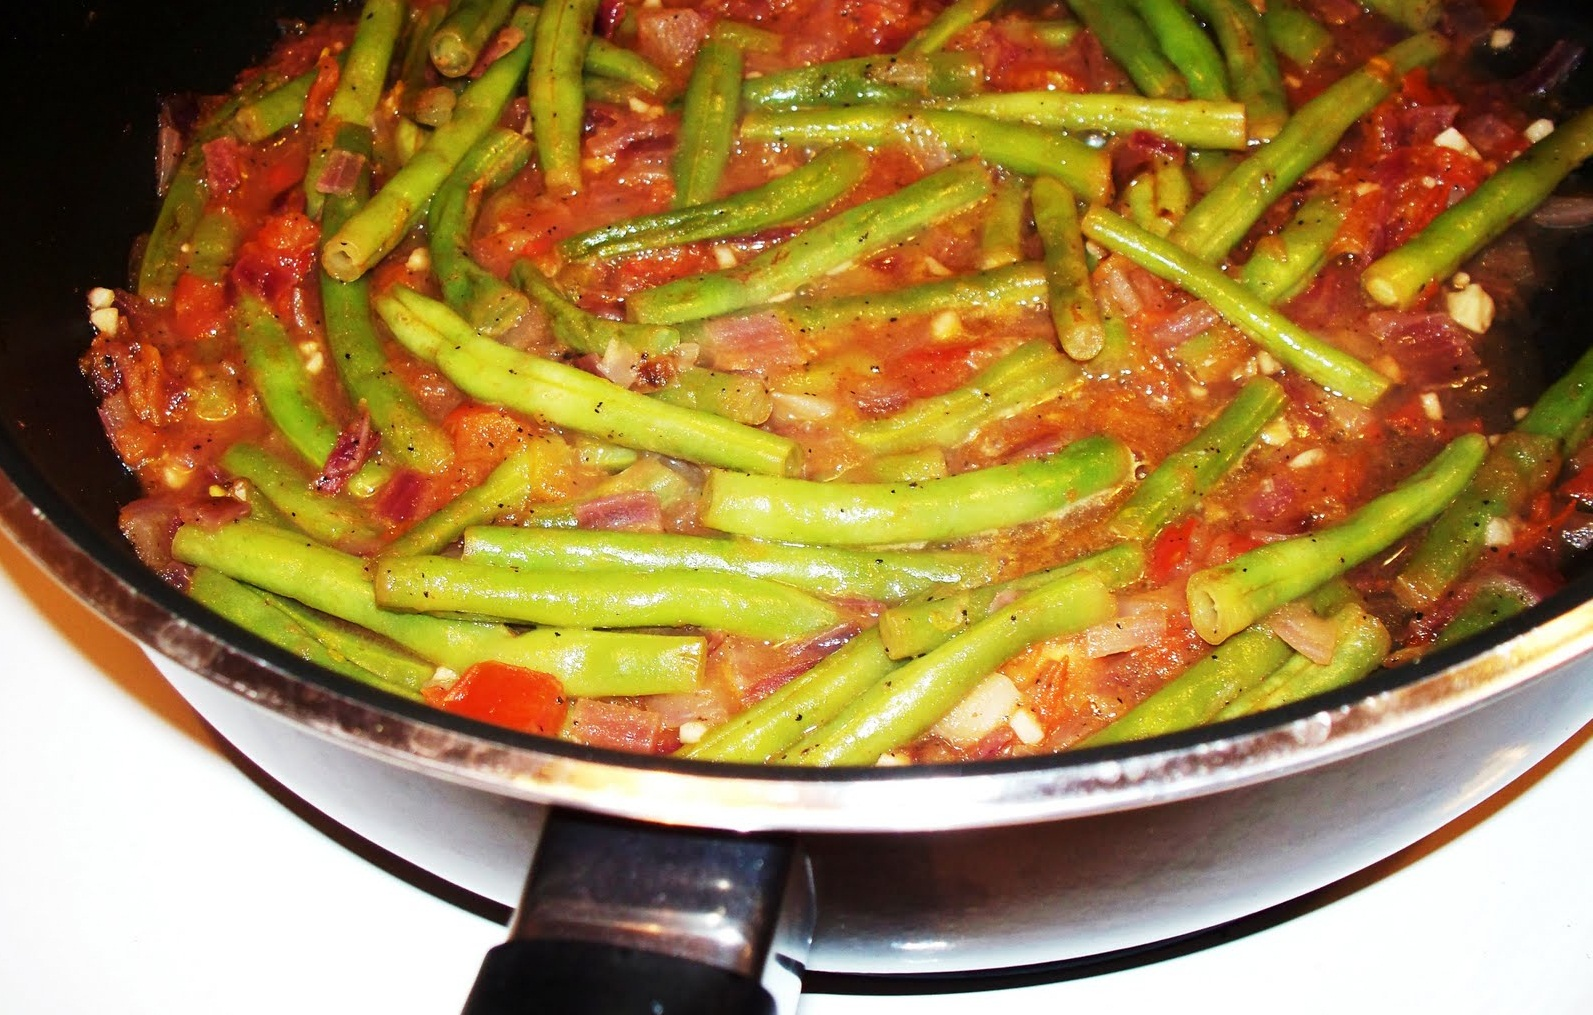 Turkish green beans recipe in english zeytinyal taze fasulye turkish green beans recipe in english forumfinder Images